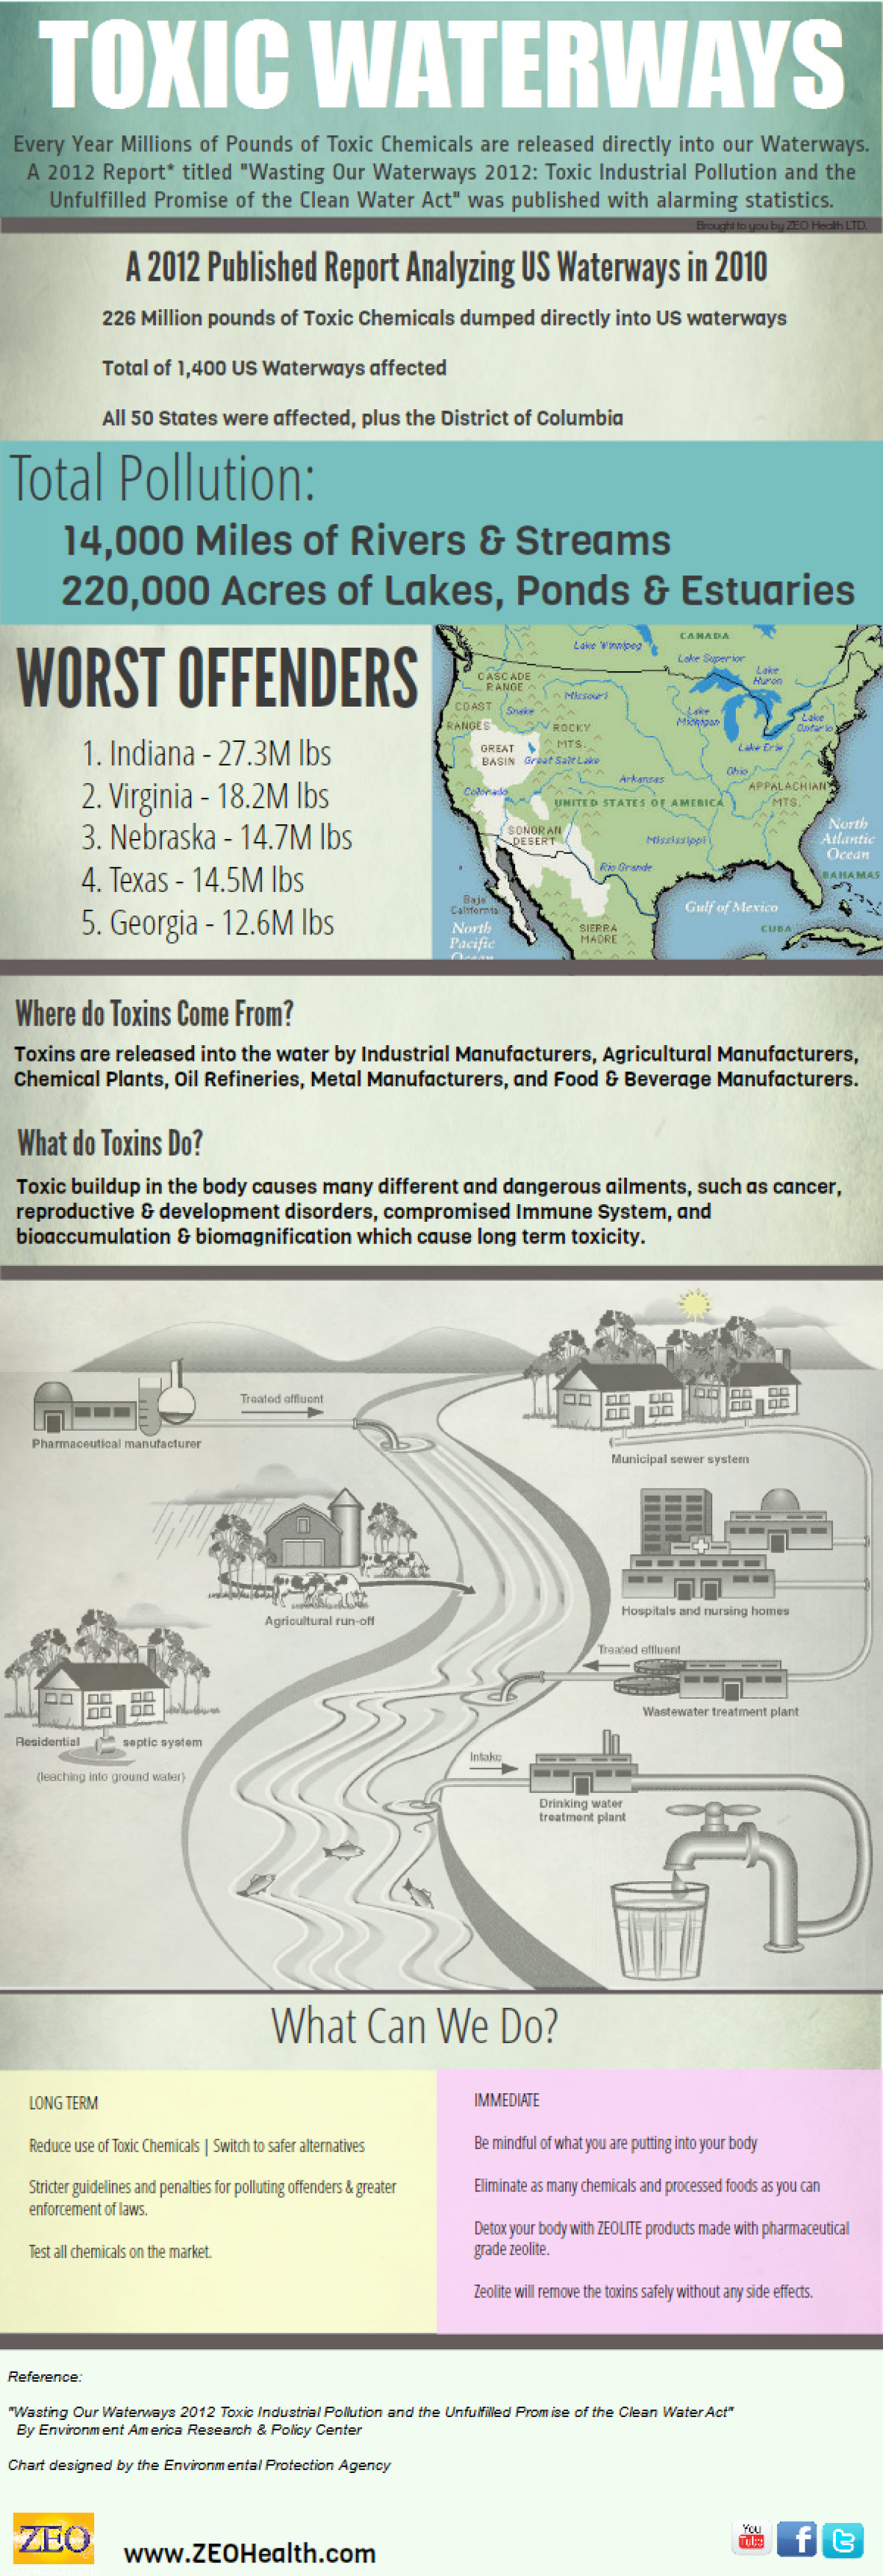 Toxic Waterways Infographic